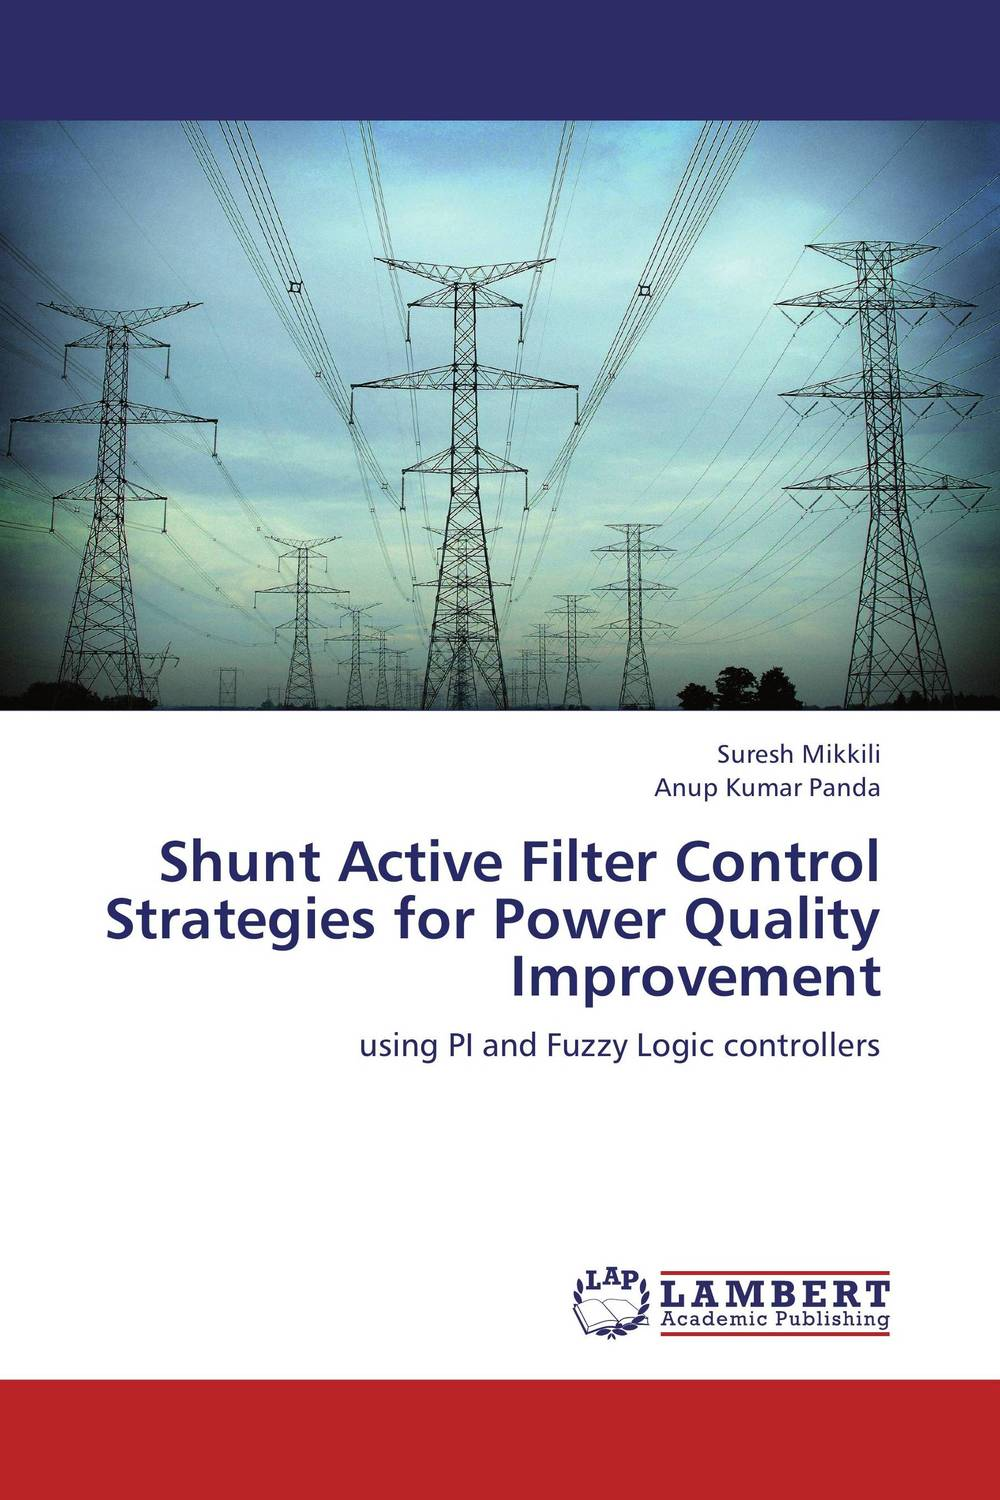 Shunt Active Filter Control Strategies for Power Quality Improvement